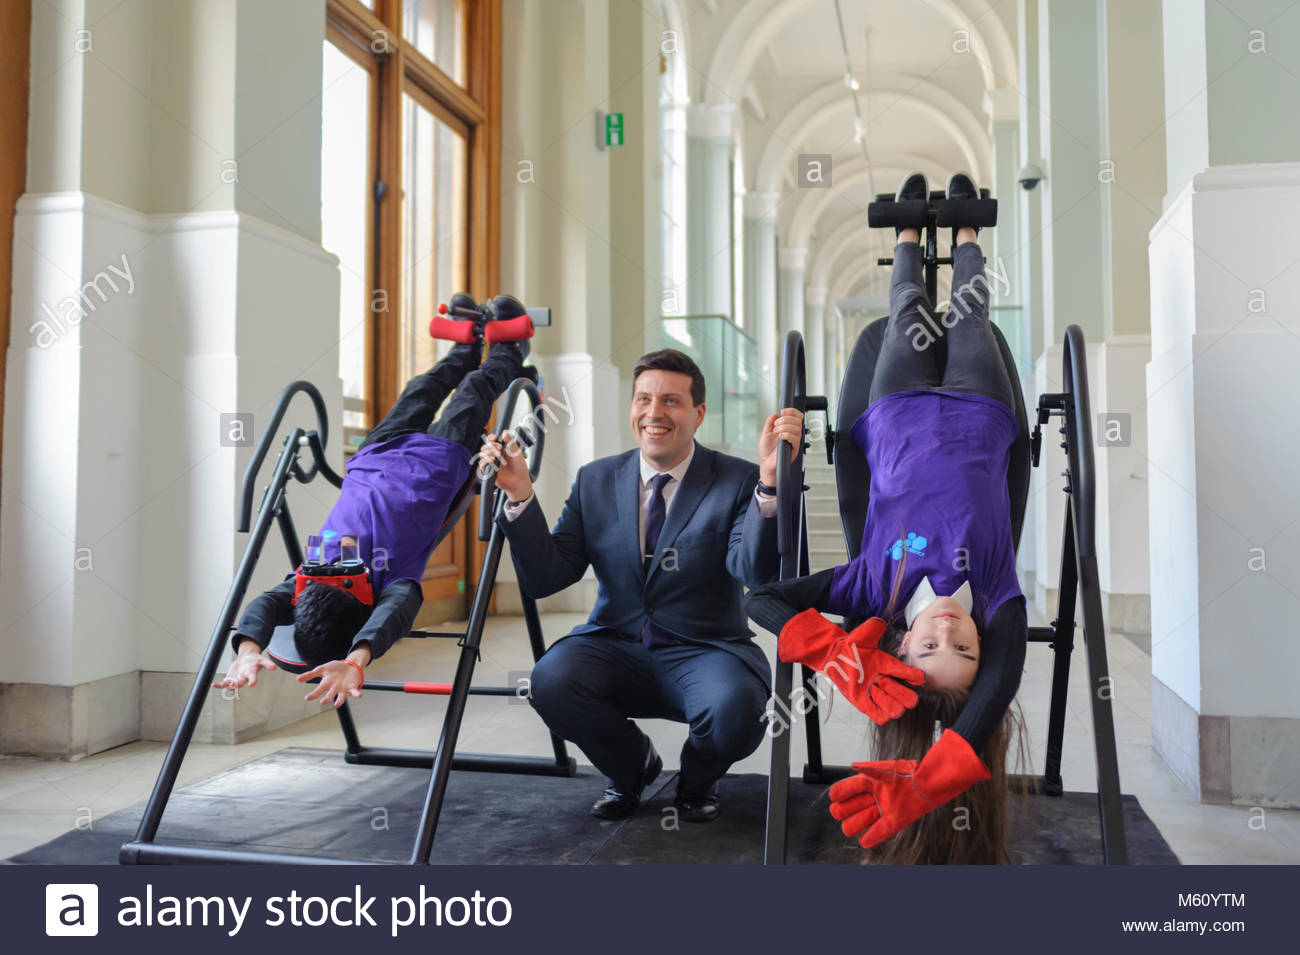 Edinburgh, UK. 27th February, 2018.  Students demonstrate inversion tables to Minister for Employability and Training - Stock Image